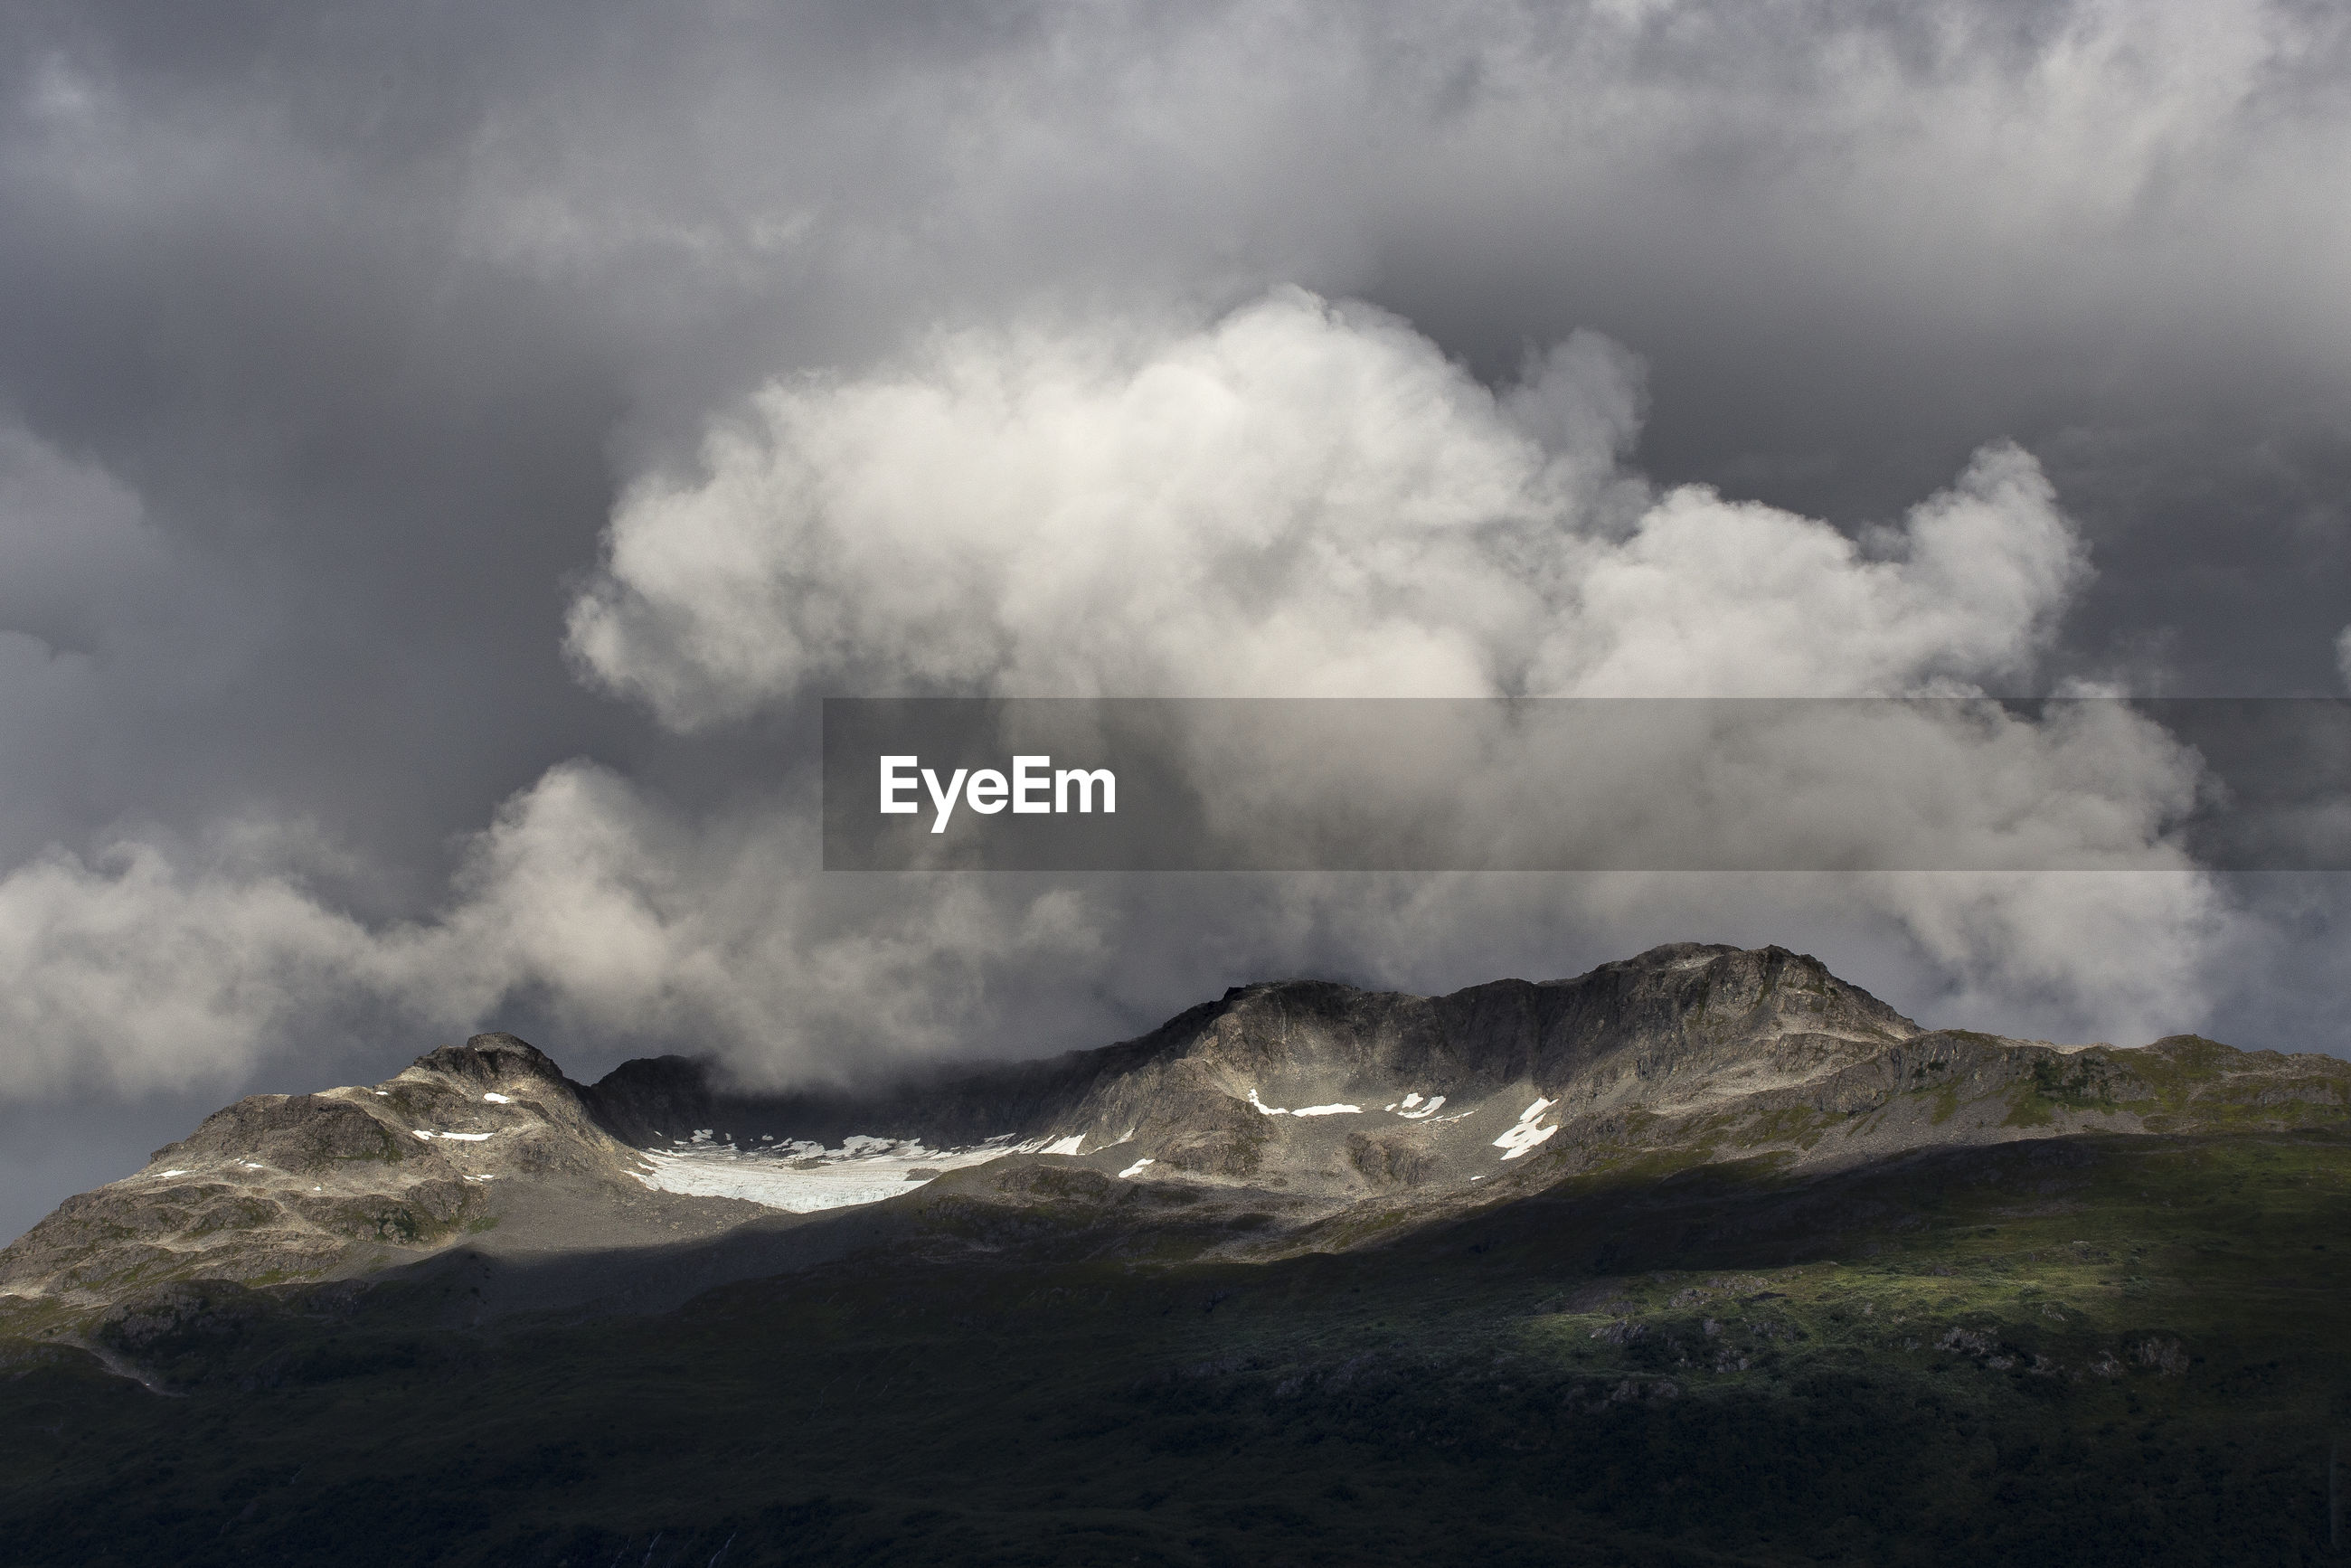 SCENIC VIEW OF SNOW COVERED MOUNTAIN AGAINST CLOUDY SKY